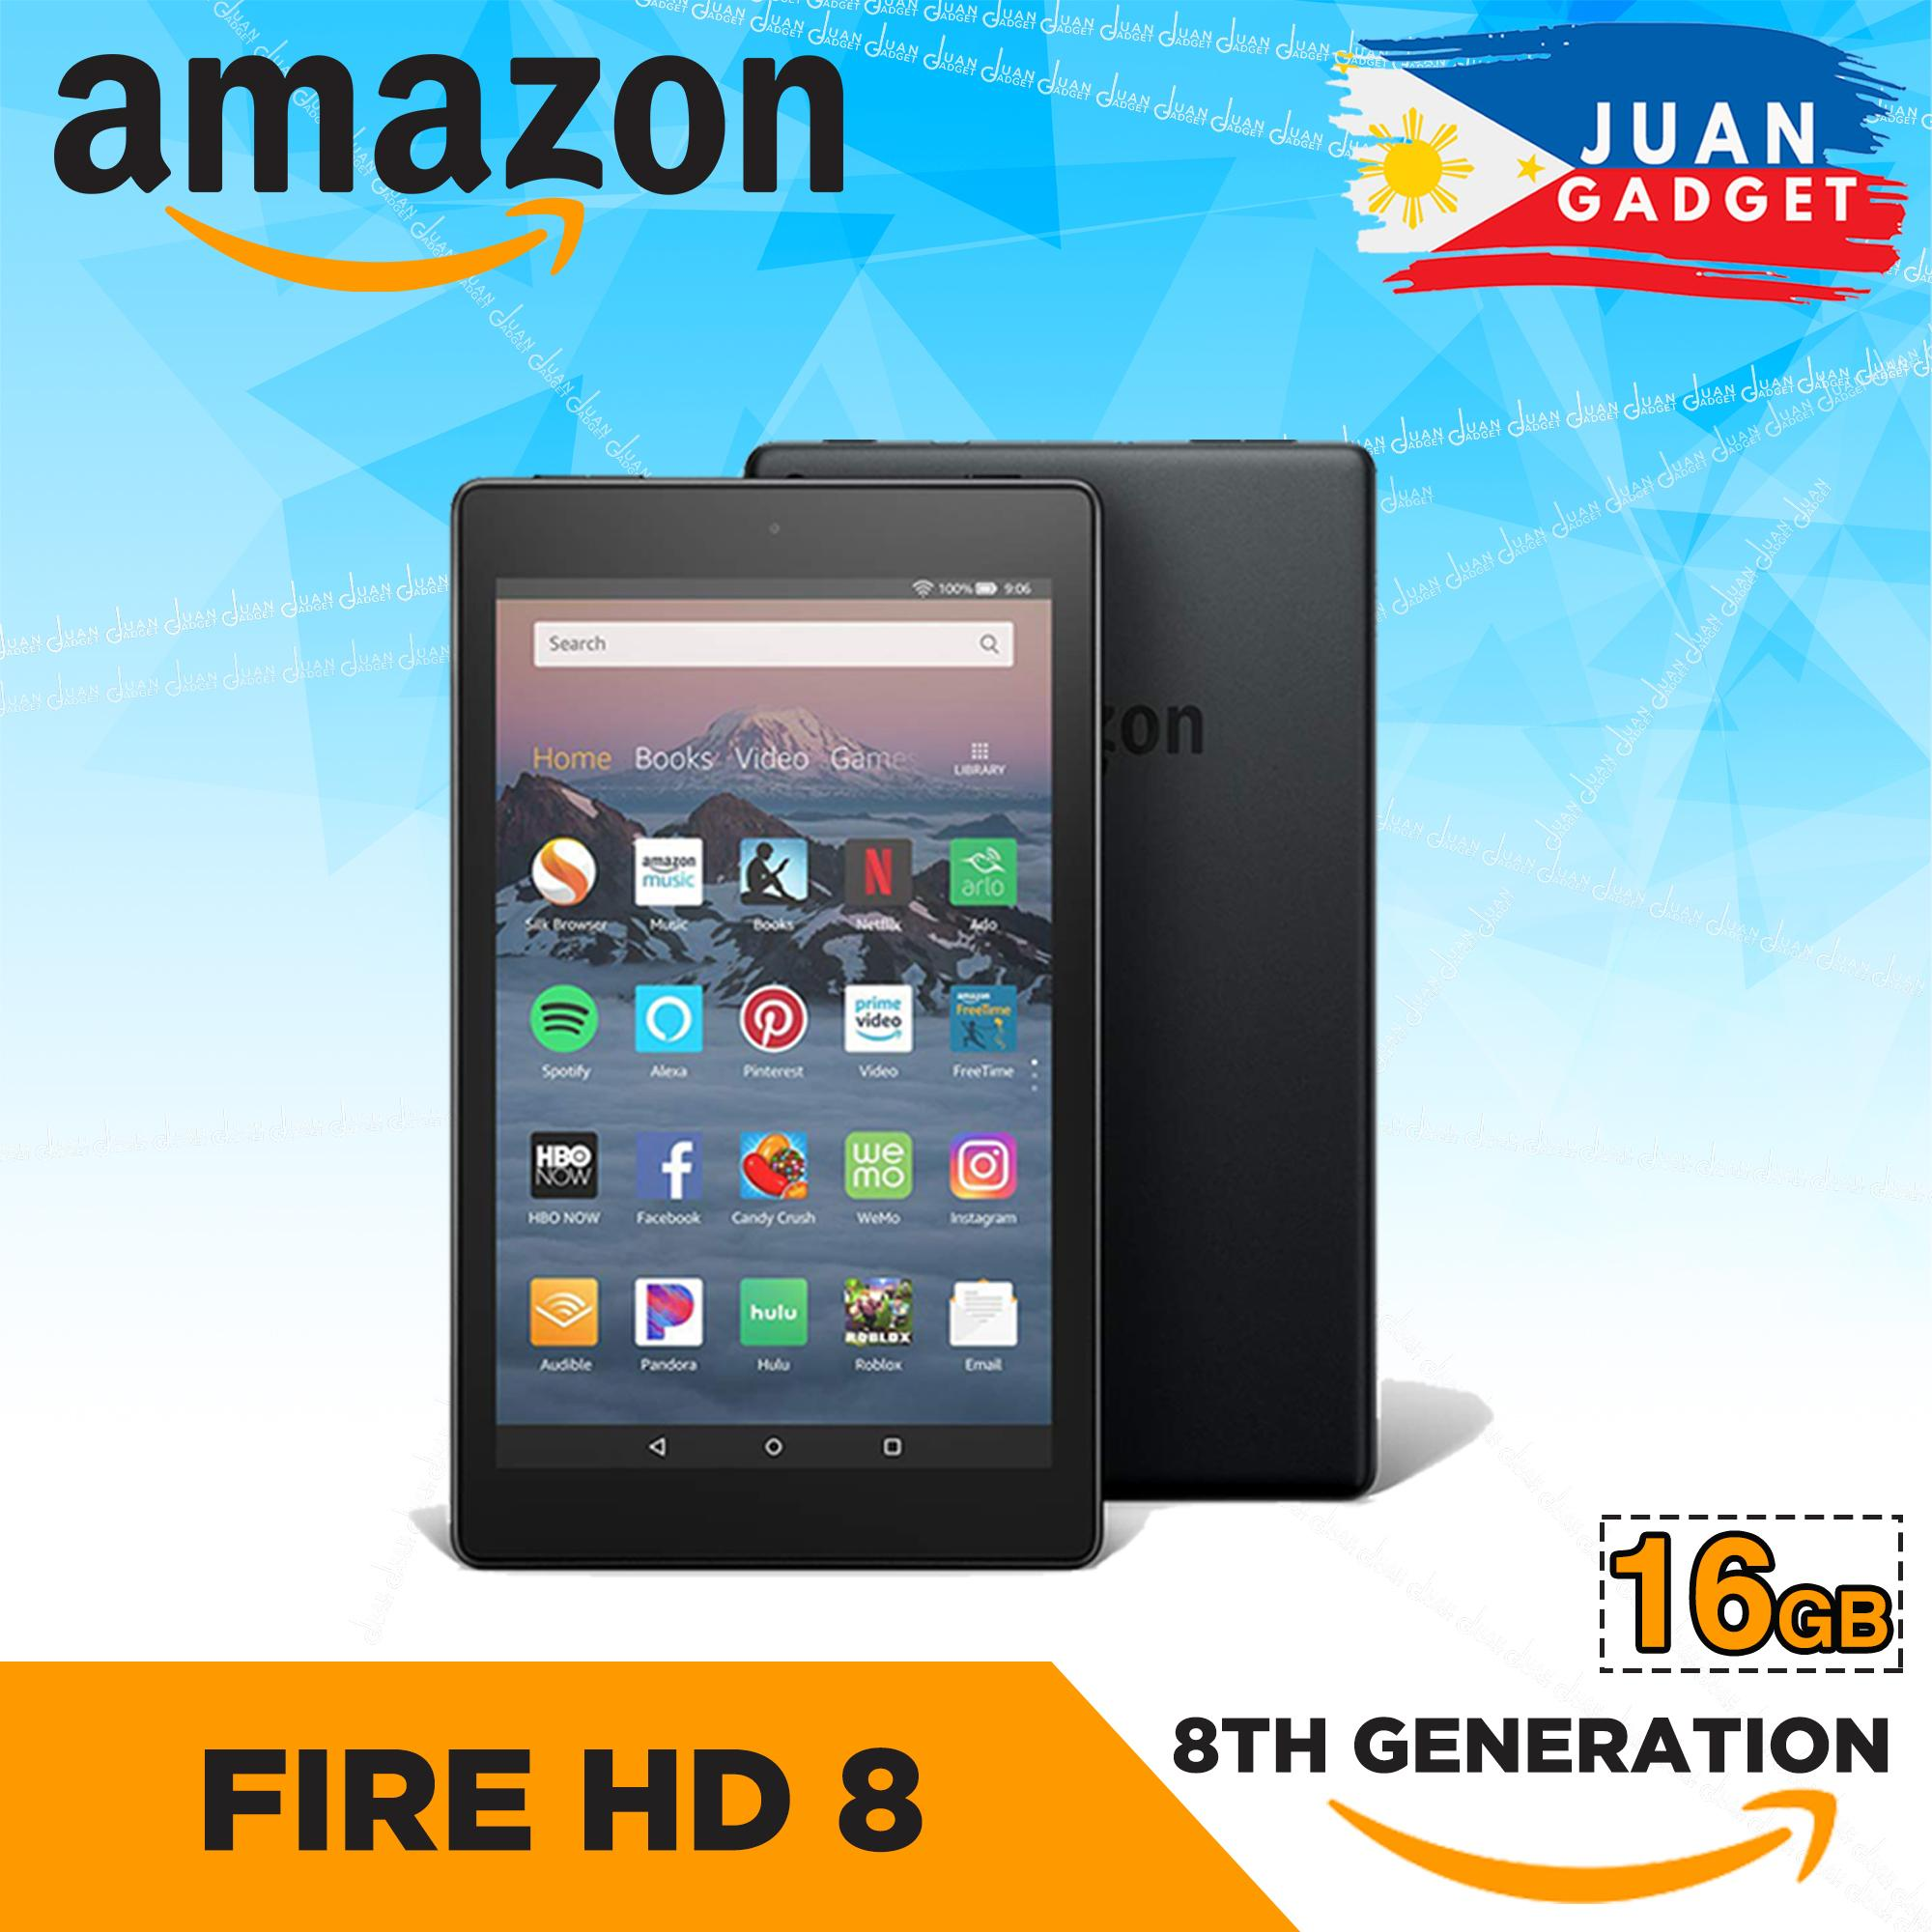 Amazon Fire Hd 8 Tablet With Alexa, 8 Hd Display 8th Geneneration By Juan Gadget.